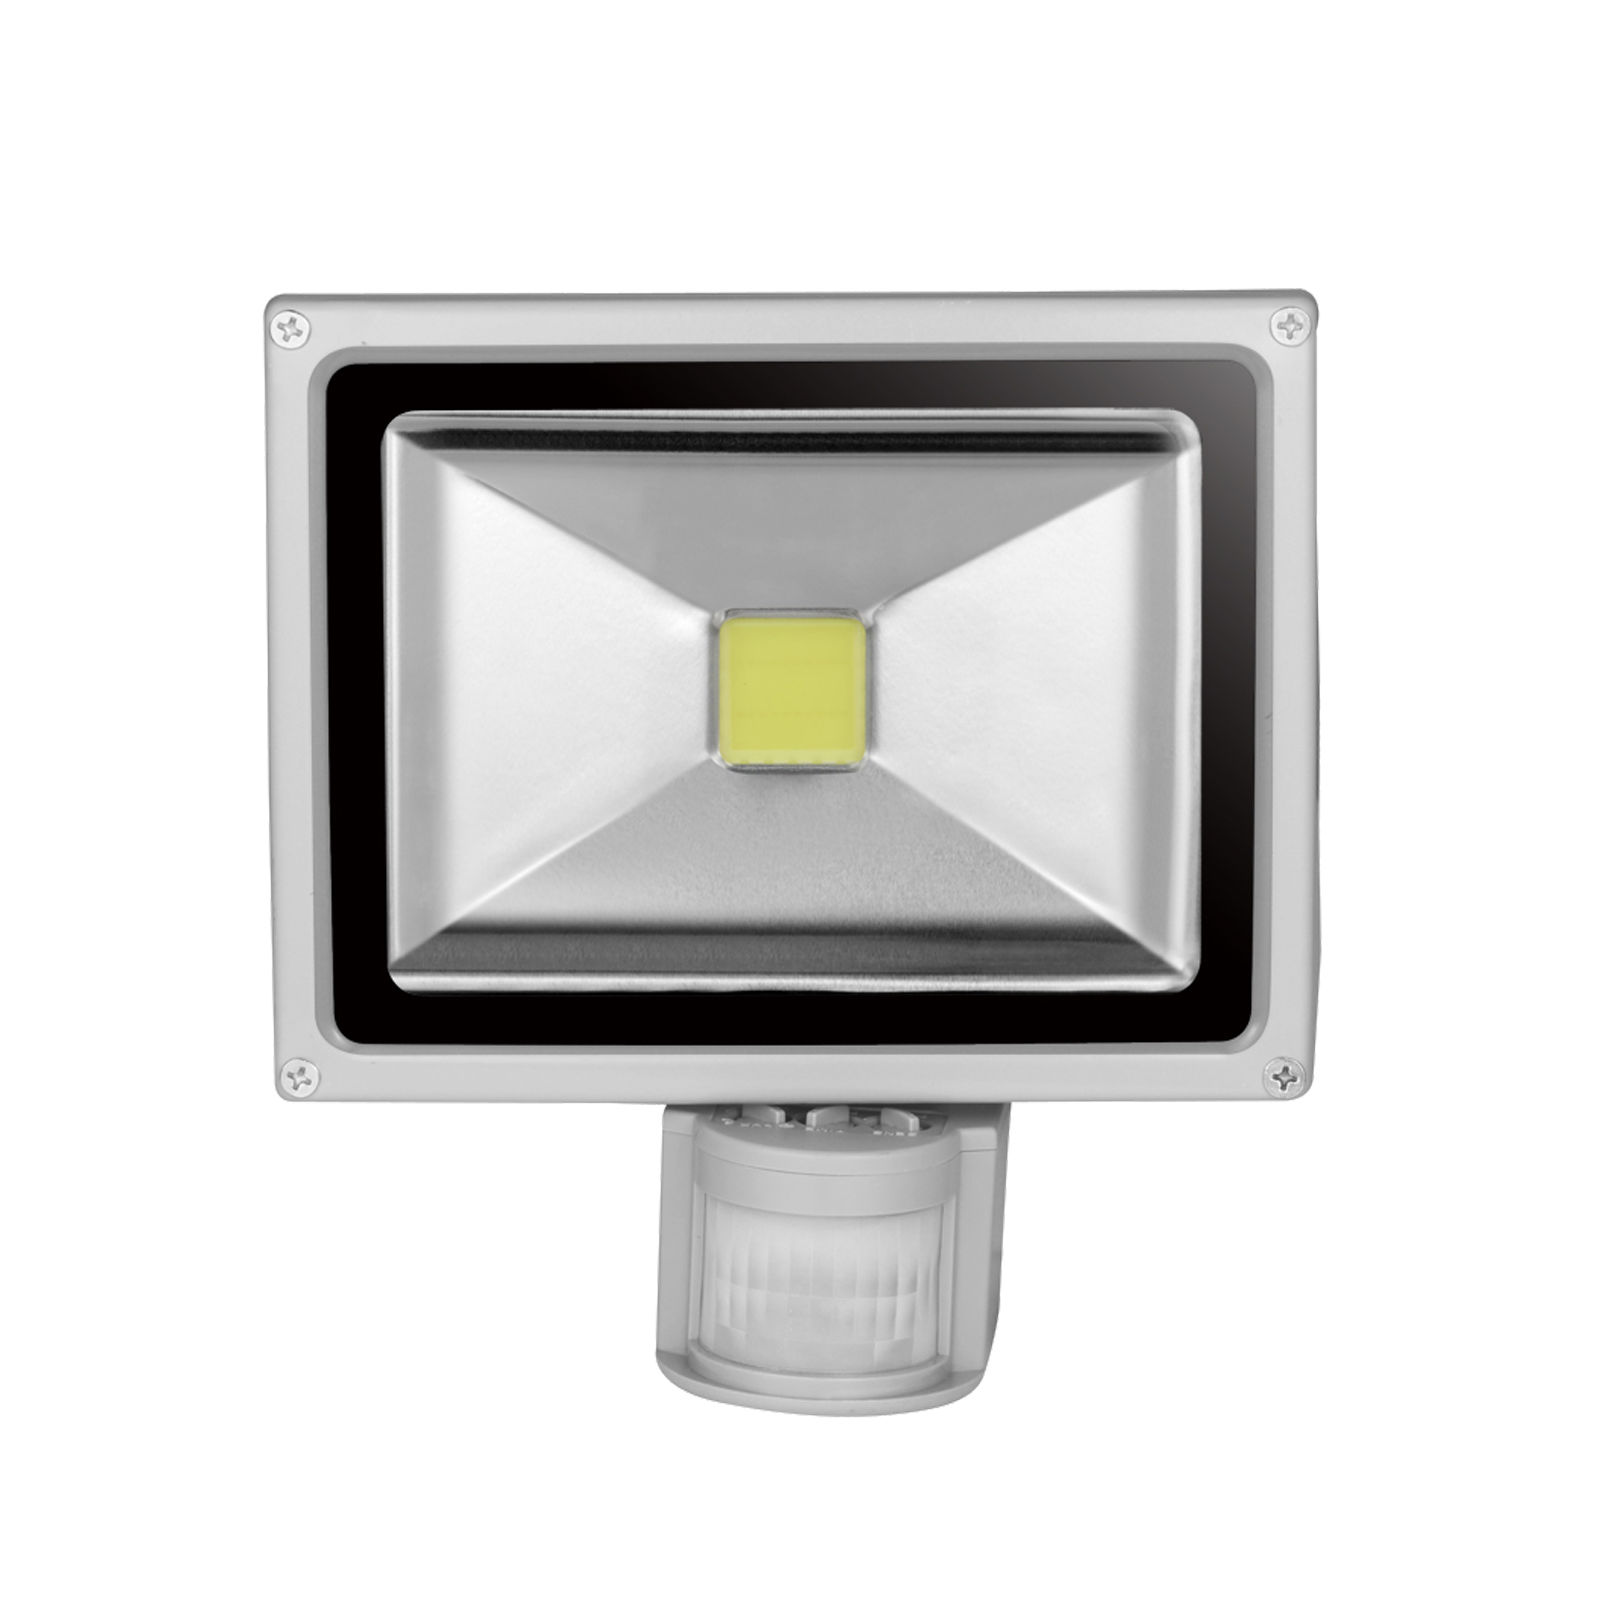 220 volt 20W LED SMD Flood Light With Motion Sensor Garden